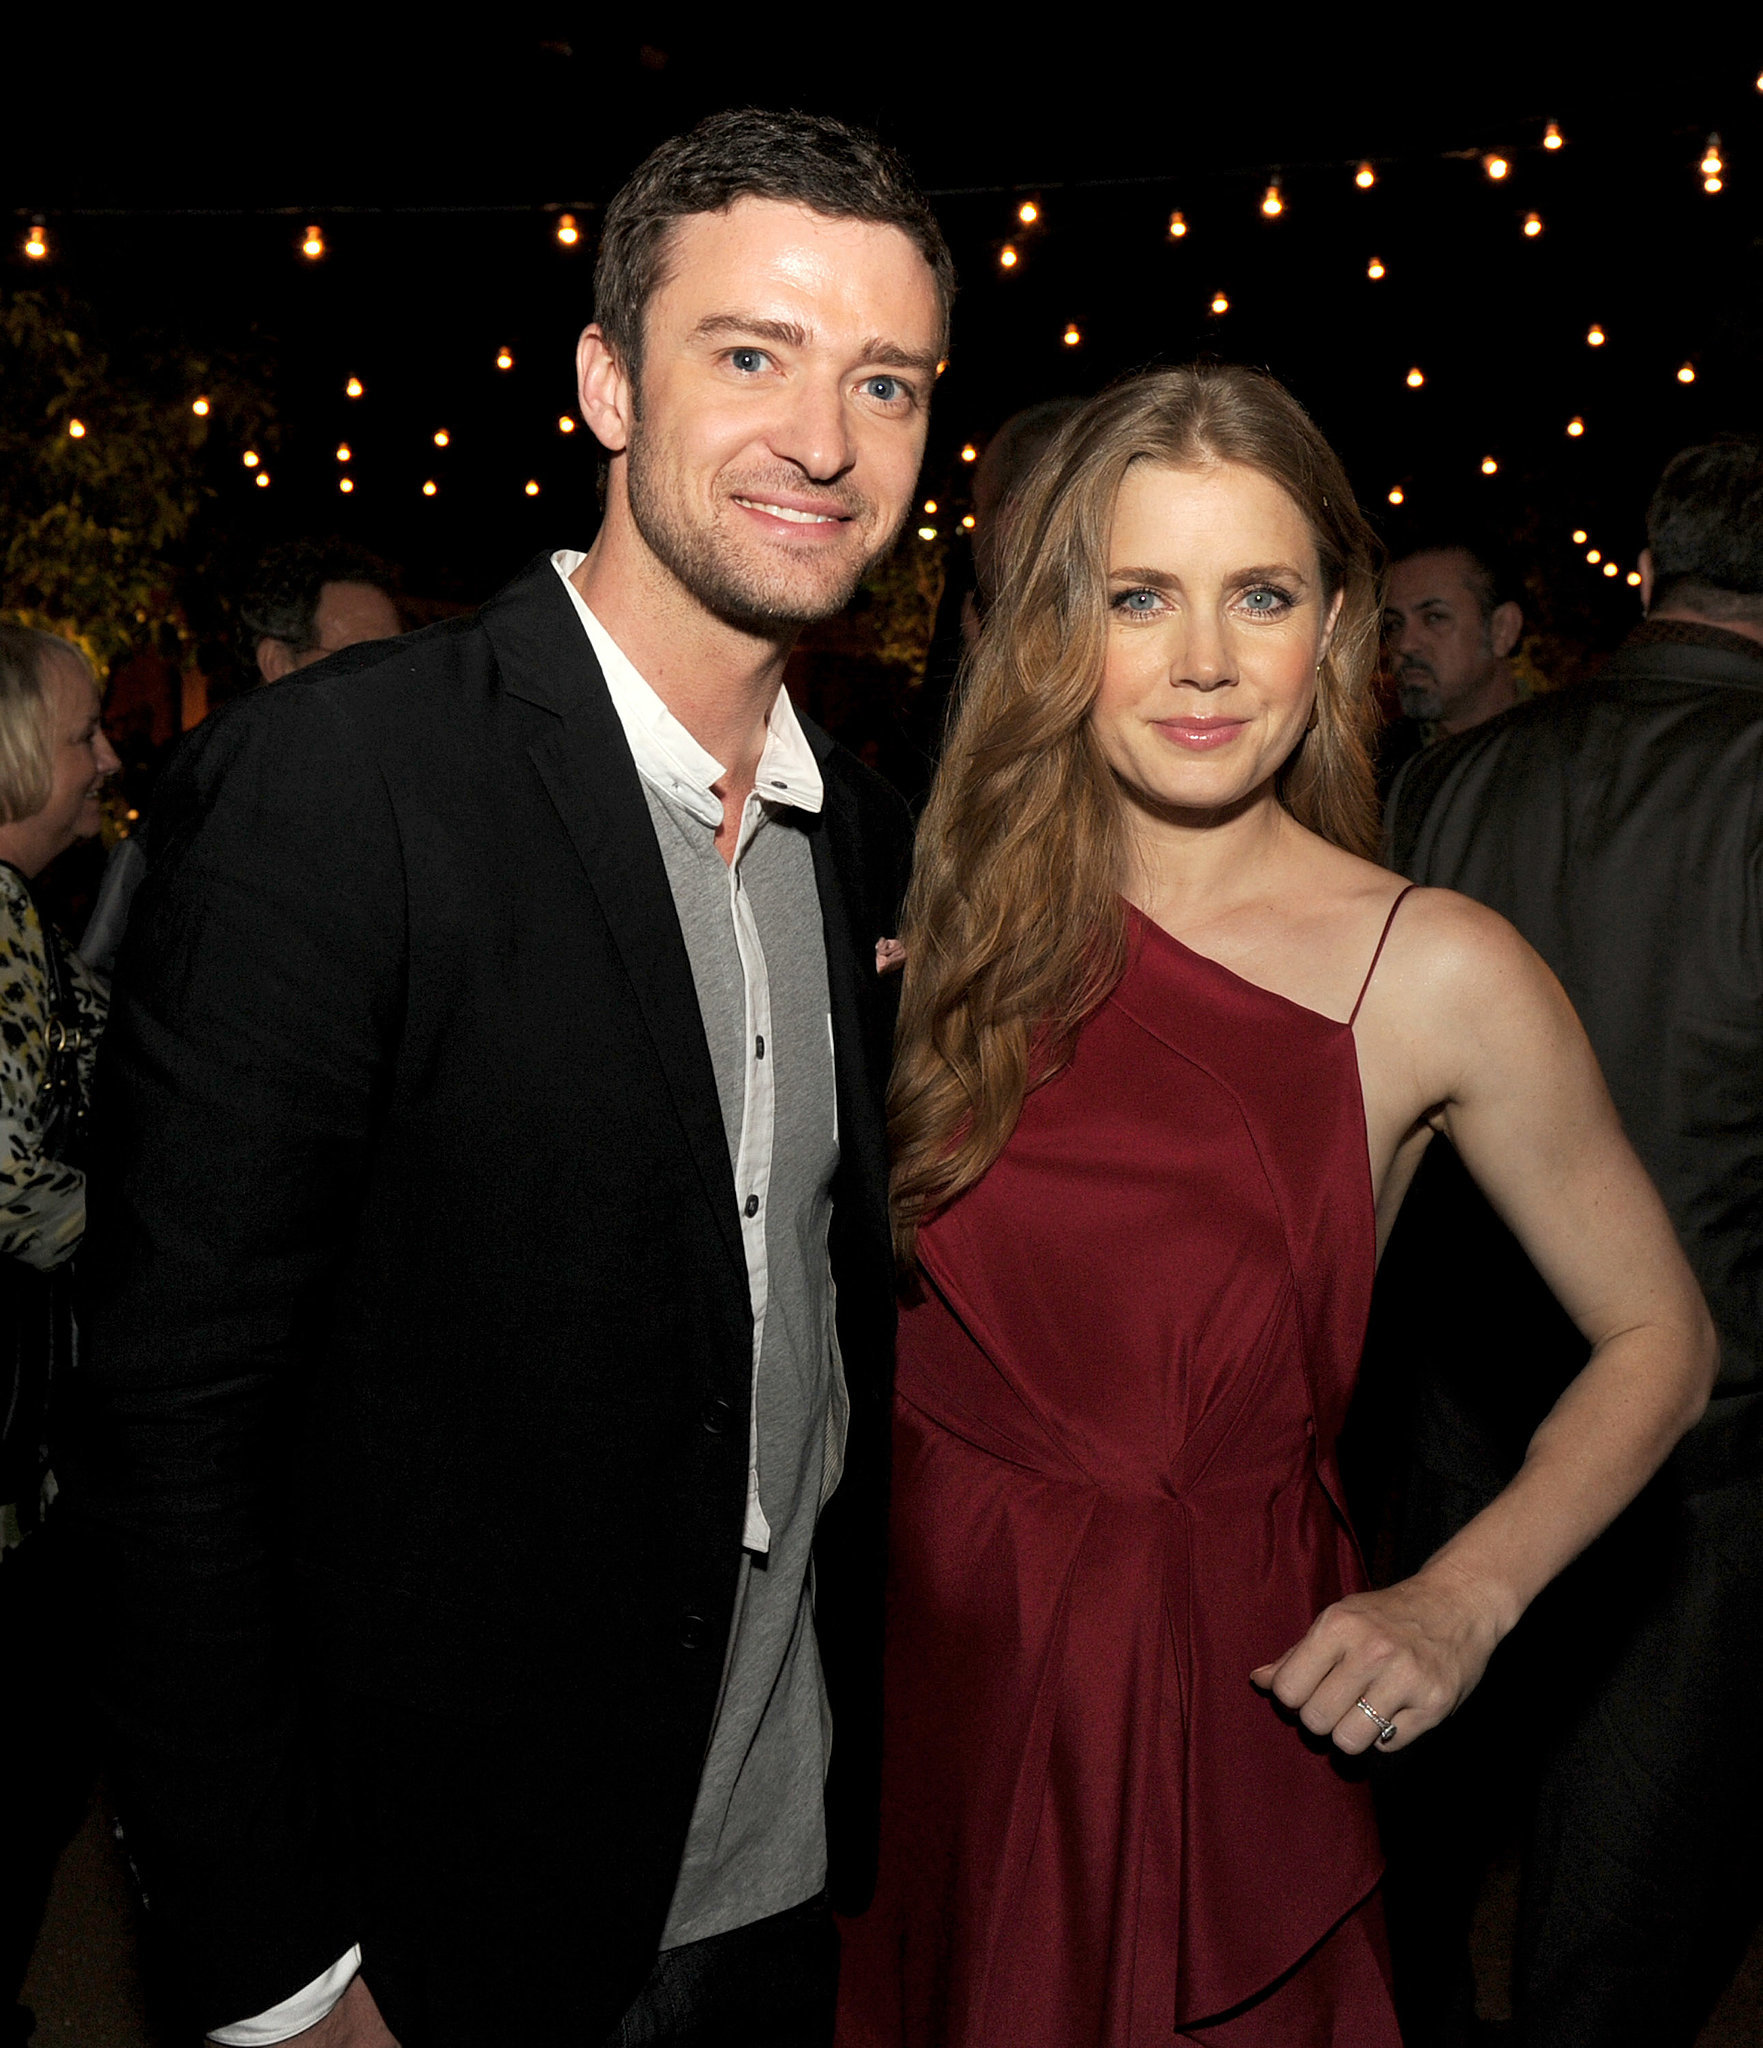 He and Amy Adams posed together at the afterparty for their fi